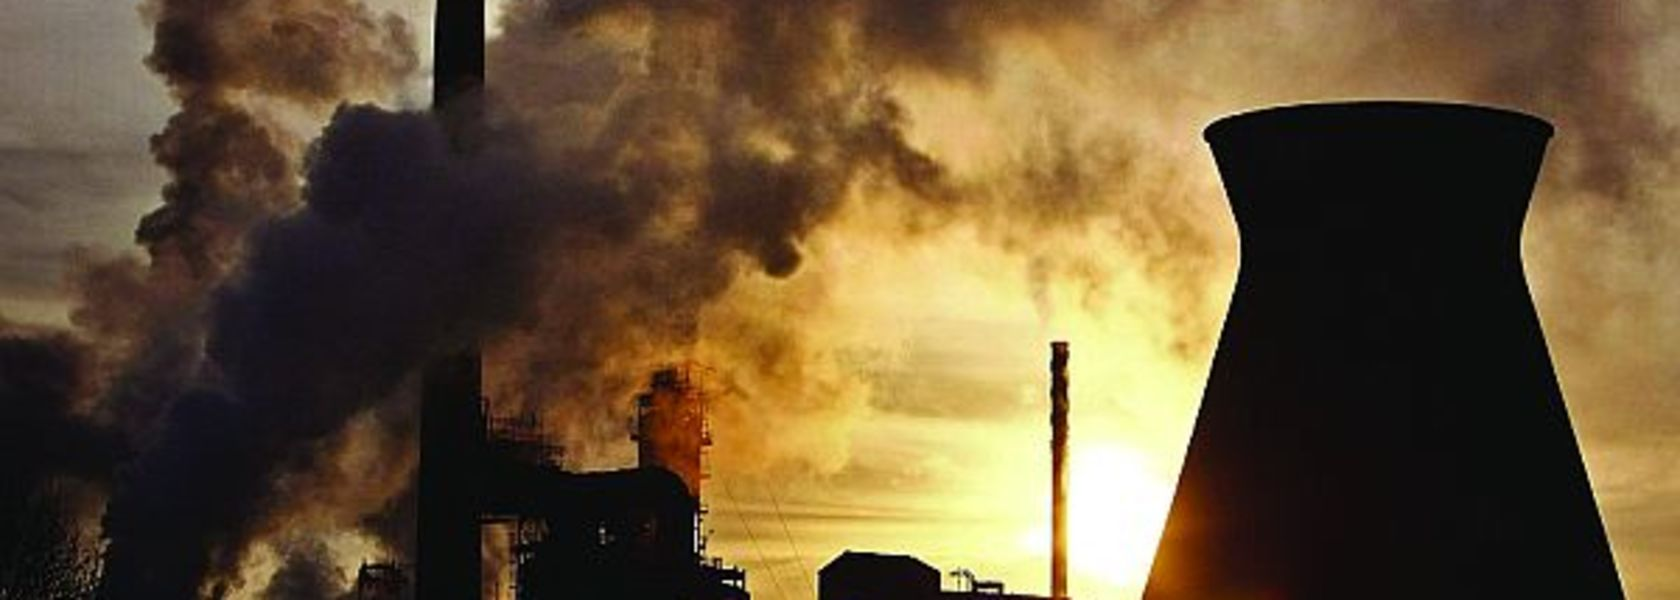 Jury is in, carbon pricing beats subsidies: OECD